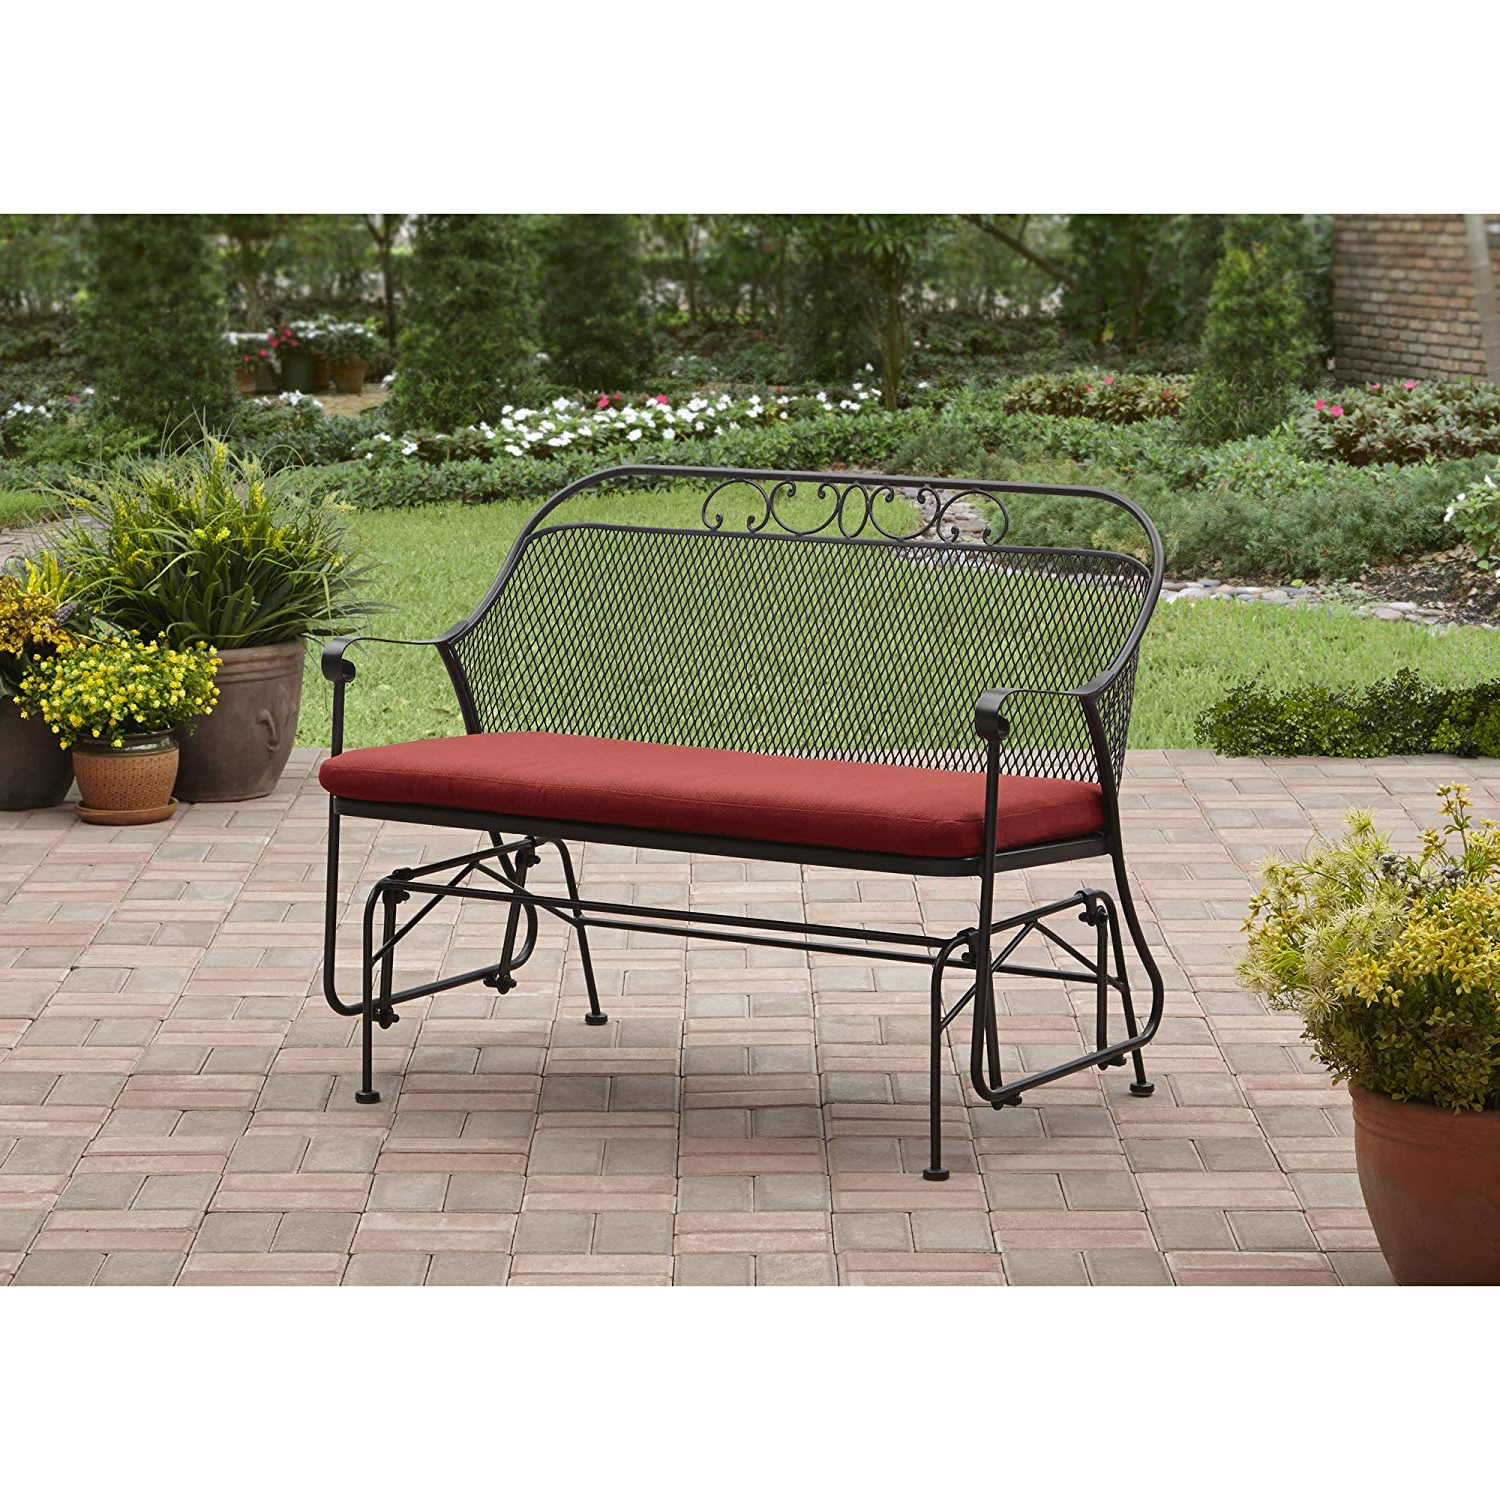 Best And Newest Cheap Outdoor Cushion Fabric Water Resistant, Find Outdoor Regarding Glider Benches With Cushions (Gallery 20 of 30)